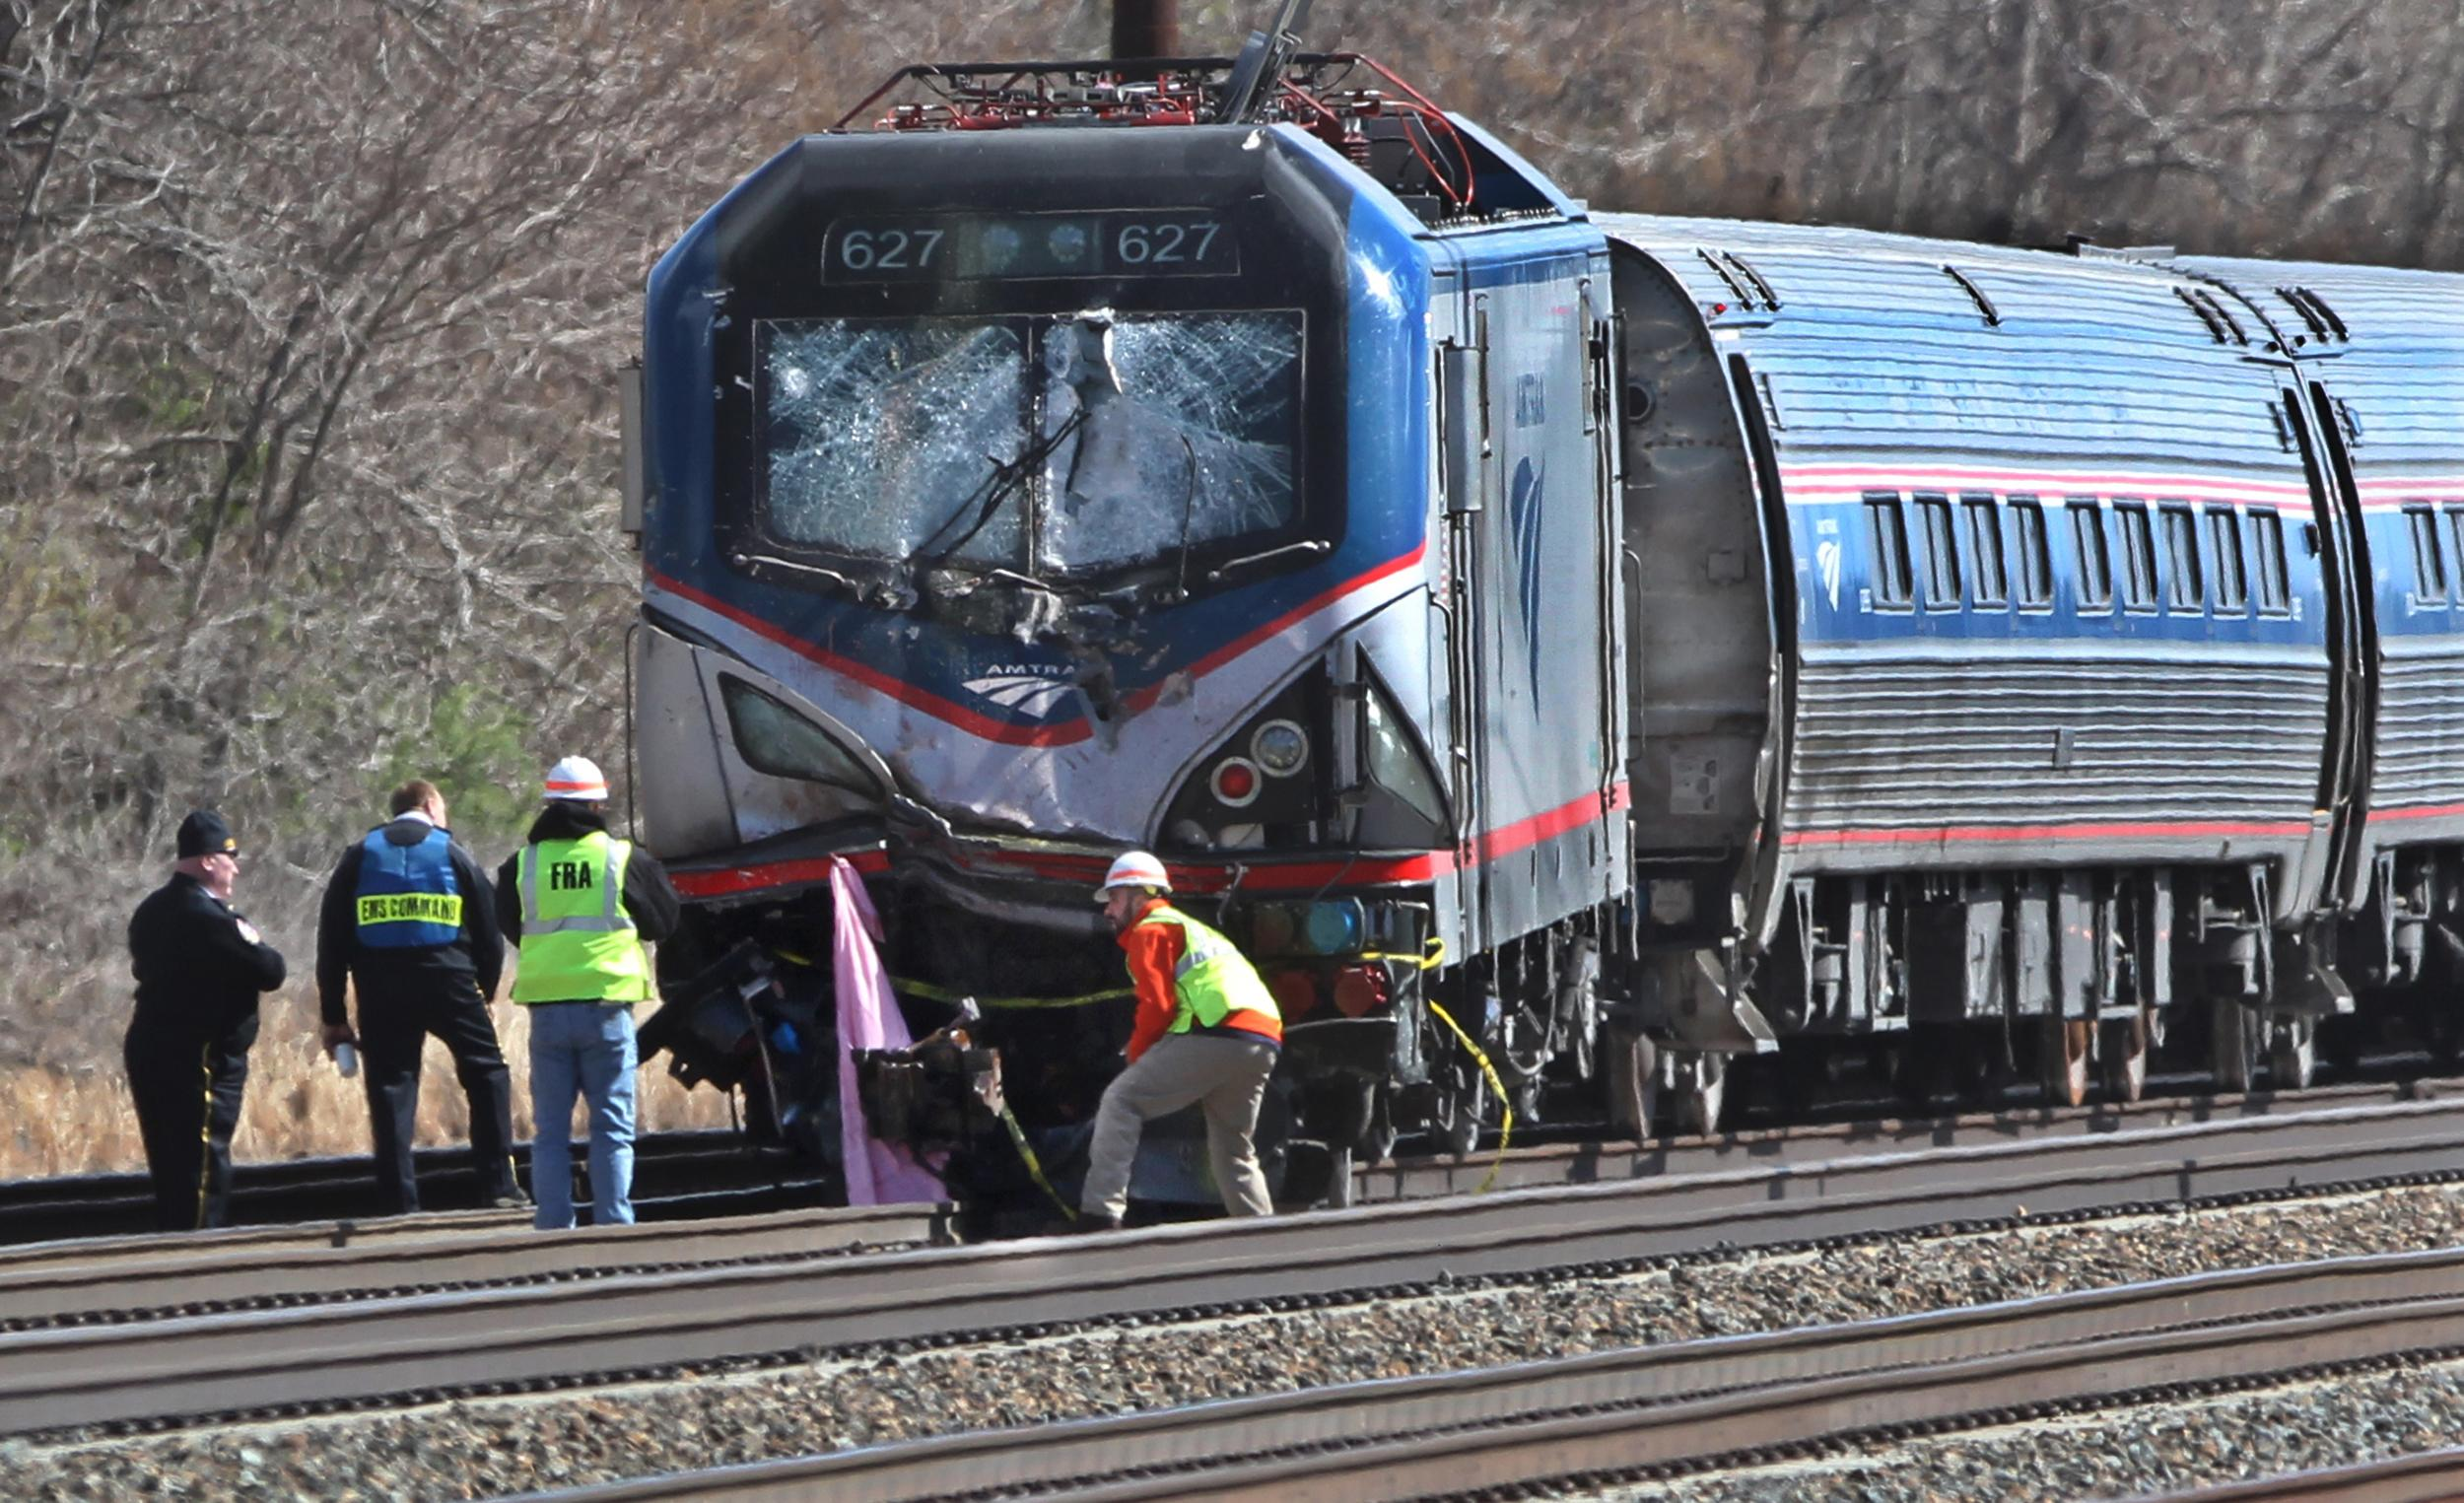 Amtrak Train Hits Equipment On Track 2 Workers Die Washington Times